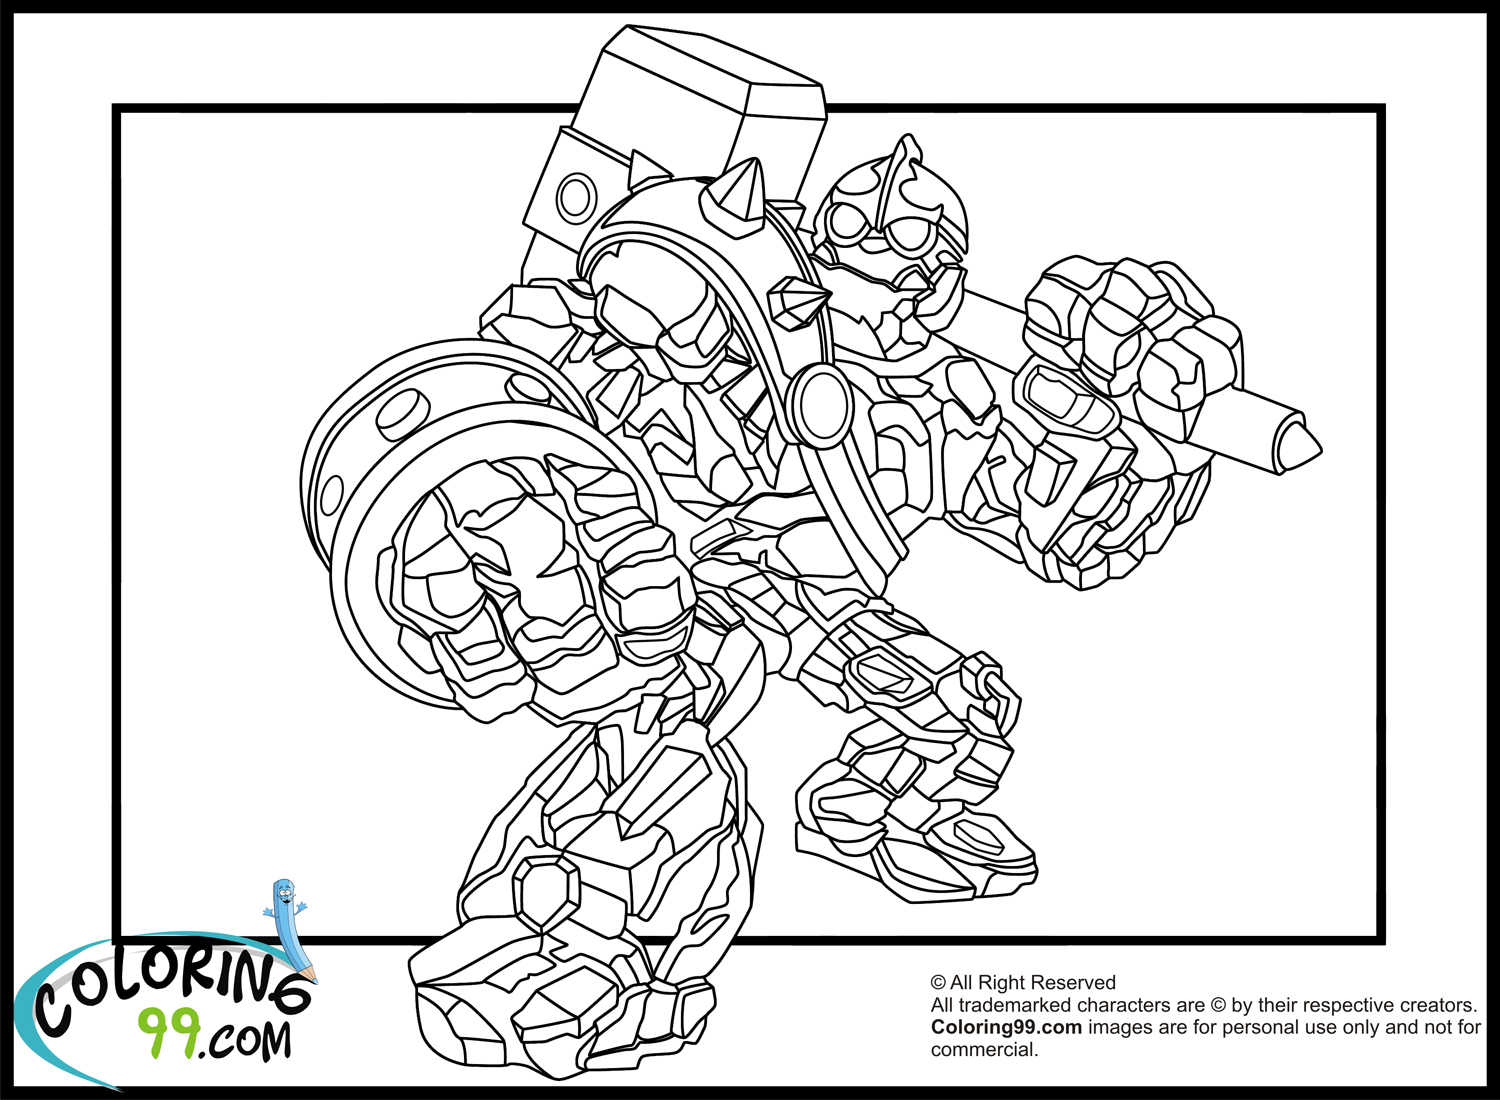 Skylanders Giants Coloring Pages | Minister Coloring